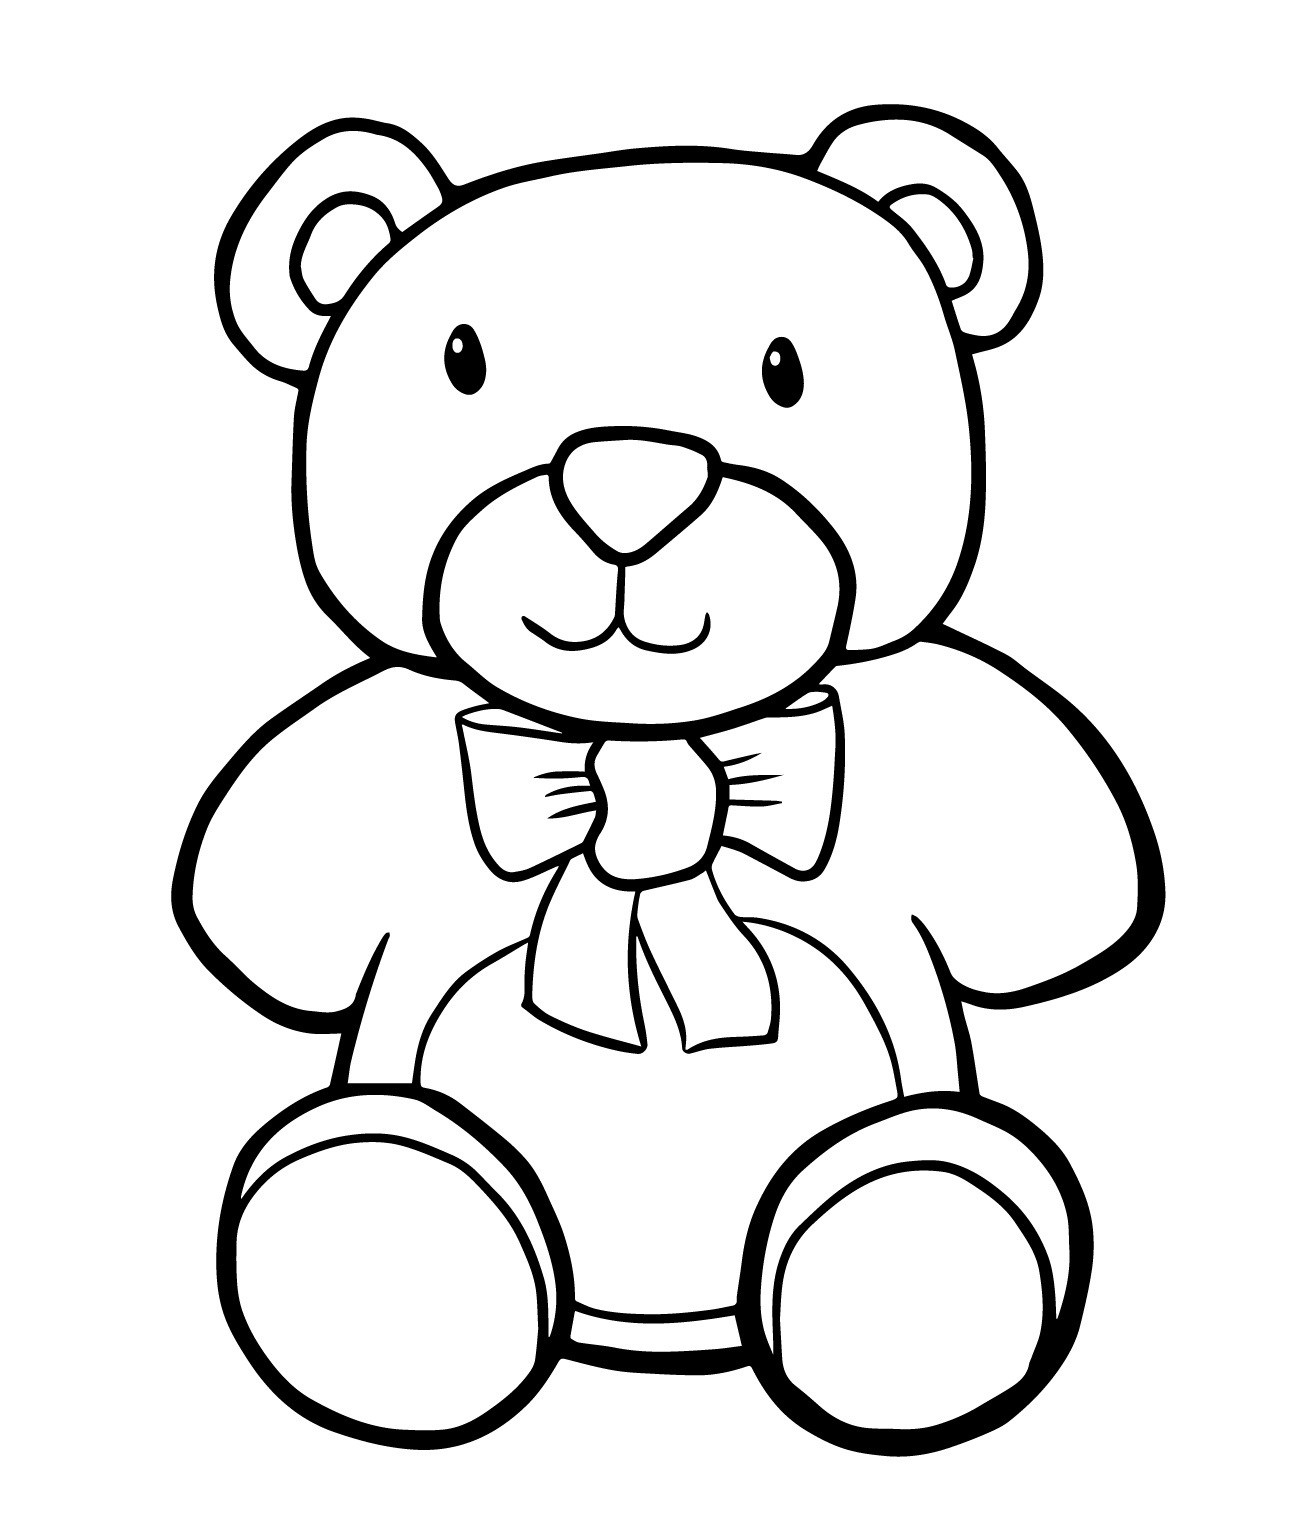 1300x1536 gangsta teddy bear coloring coloring ideas and designs